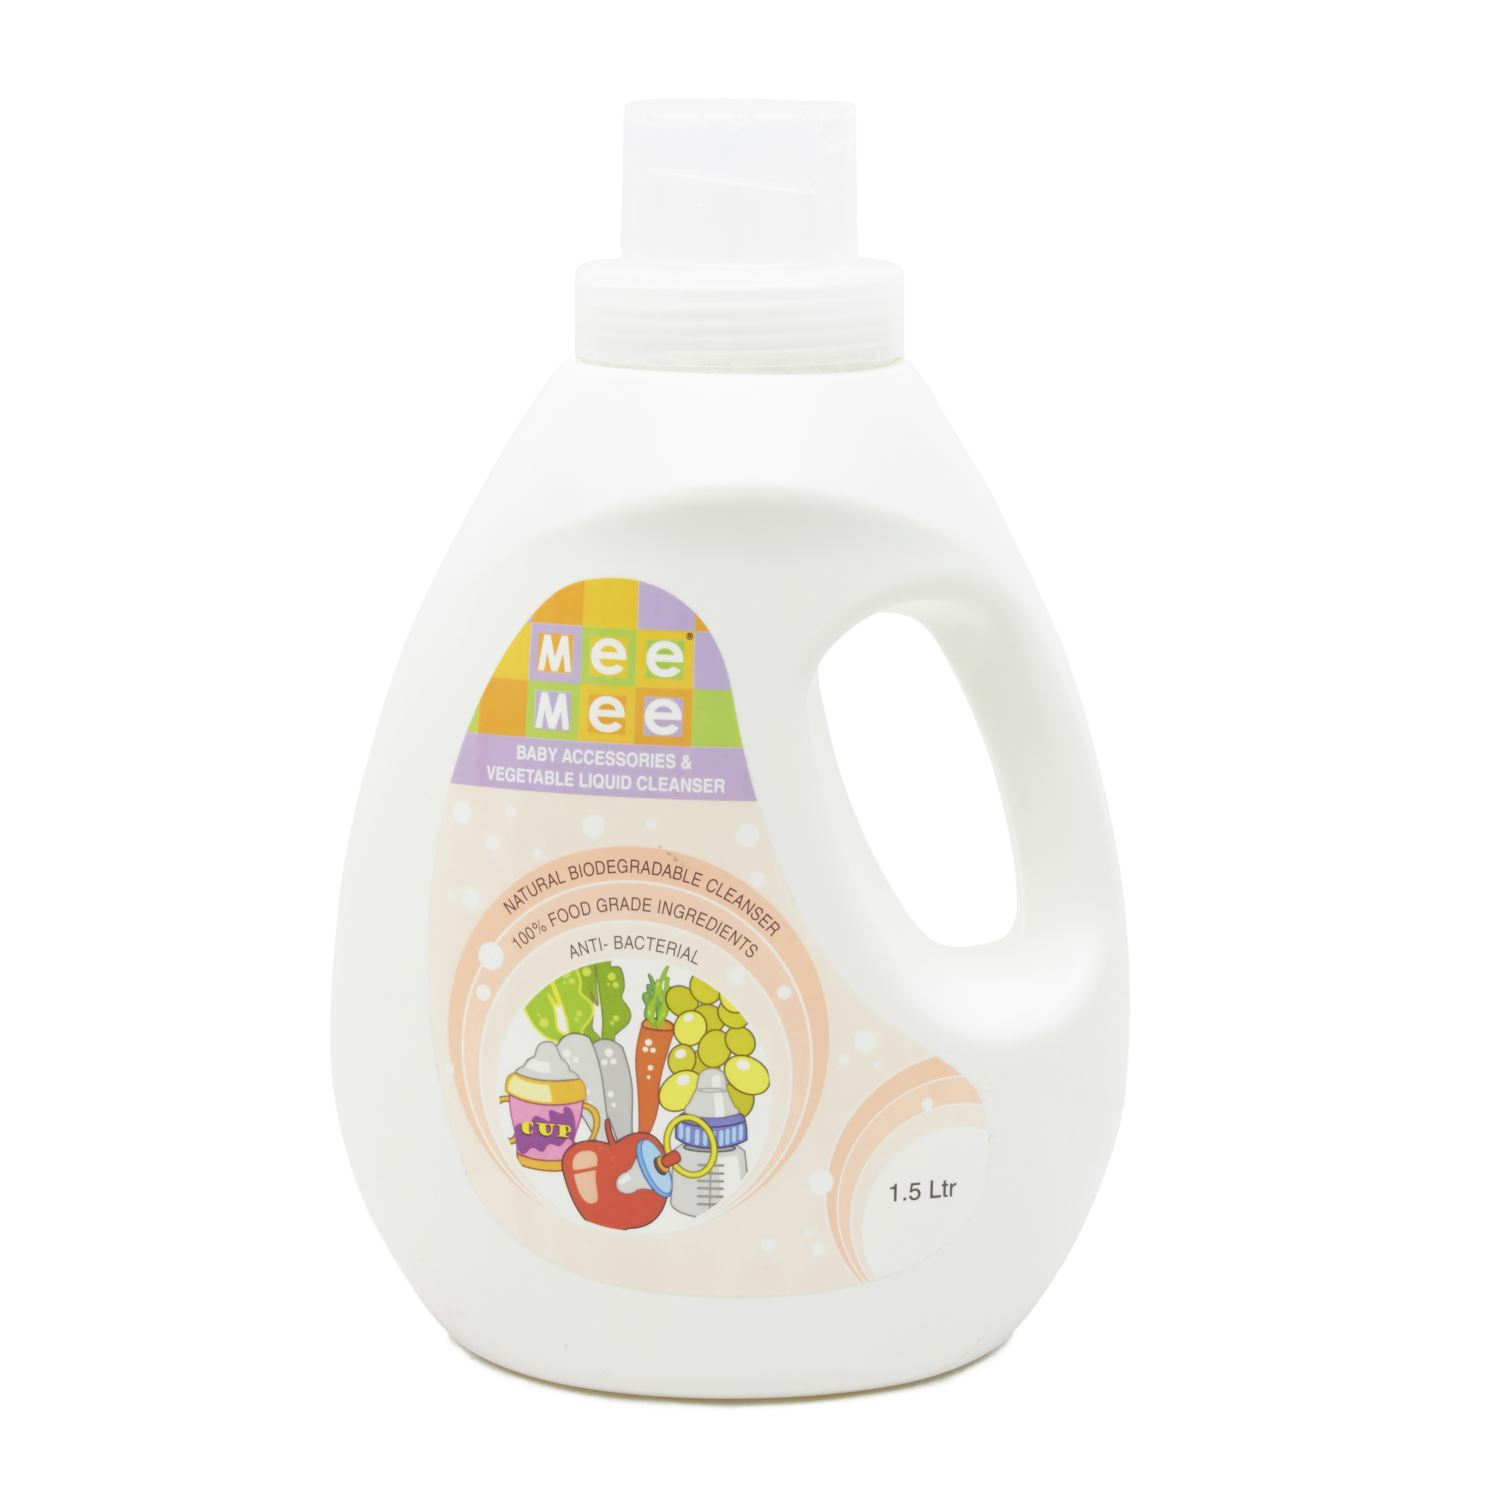 Mee Mee Accessories & Vegetable Liquid Cleanser - 1.5 L